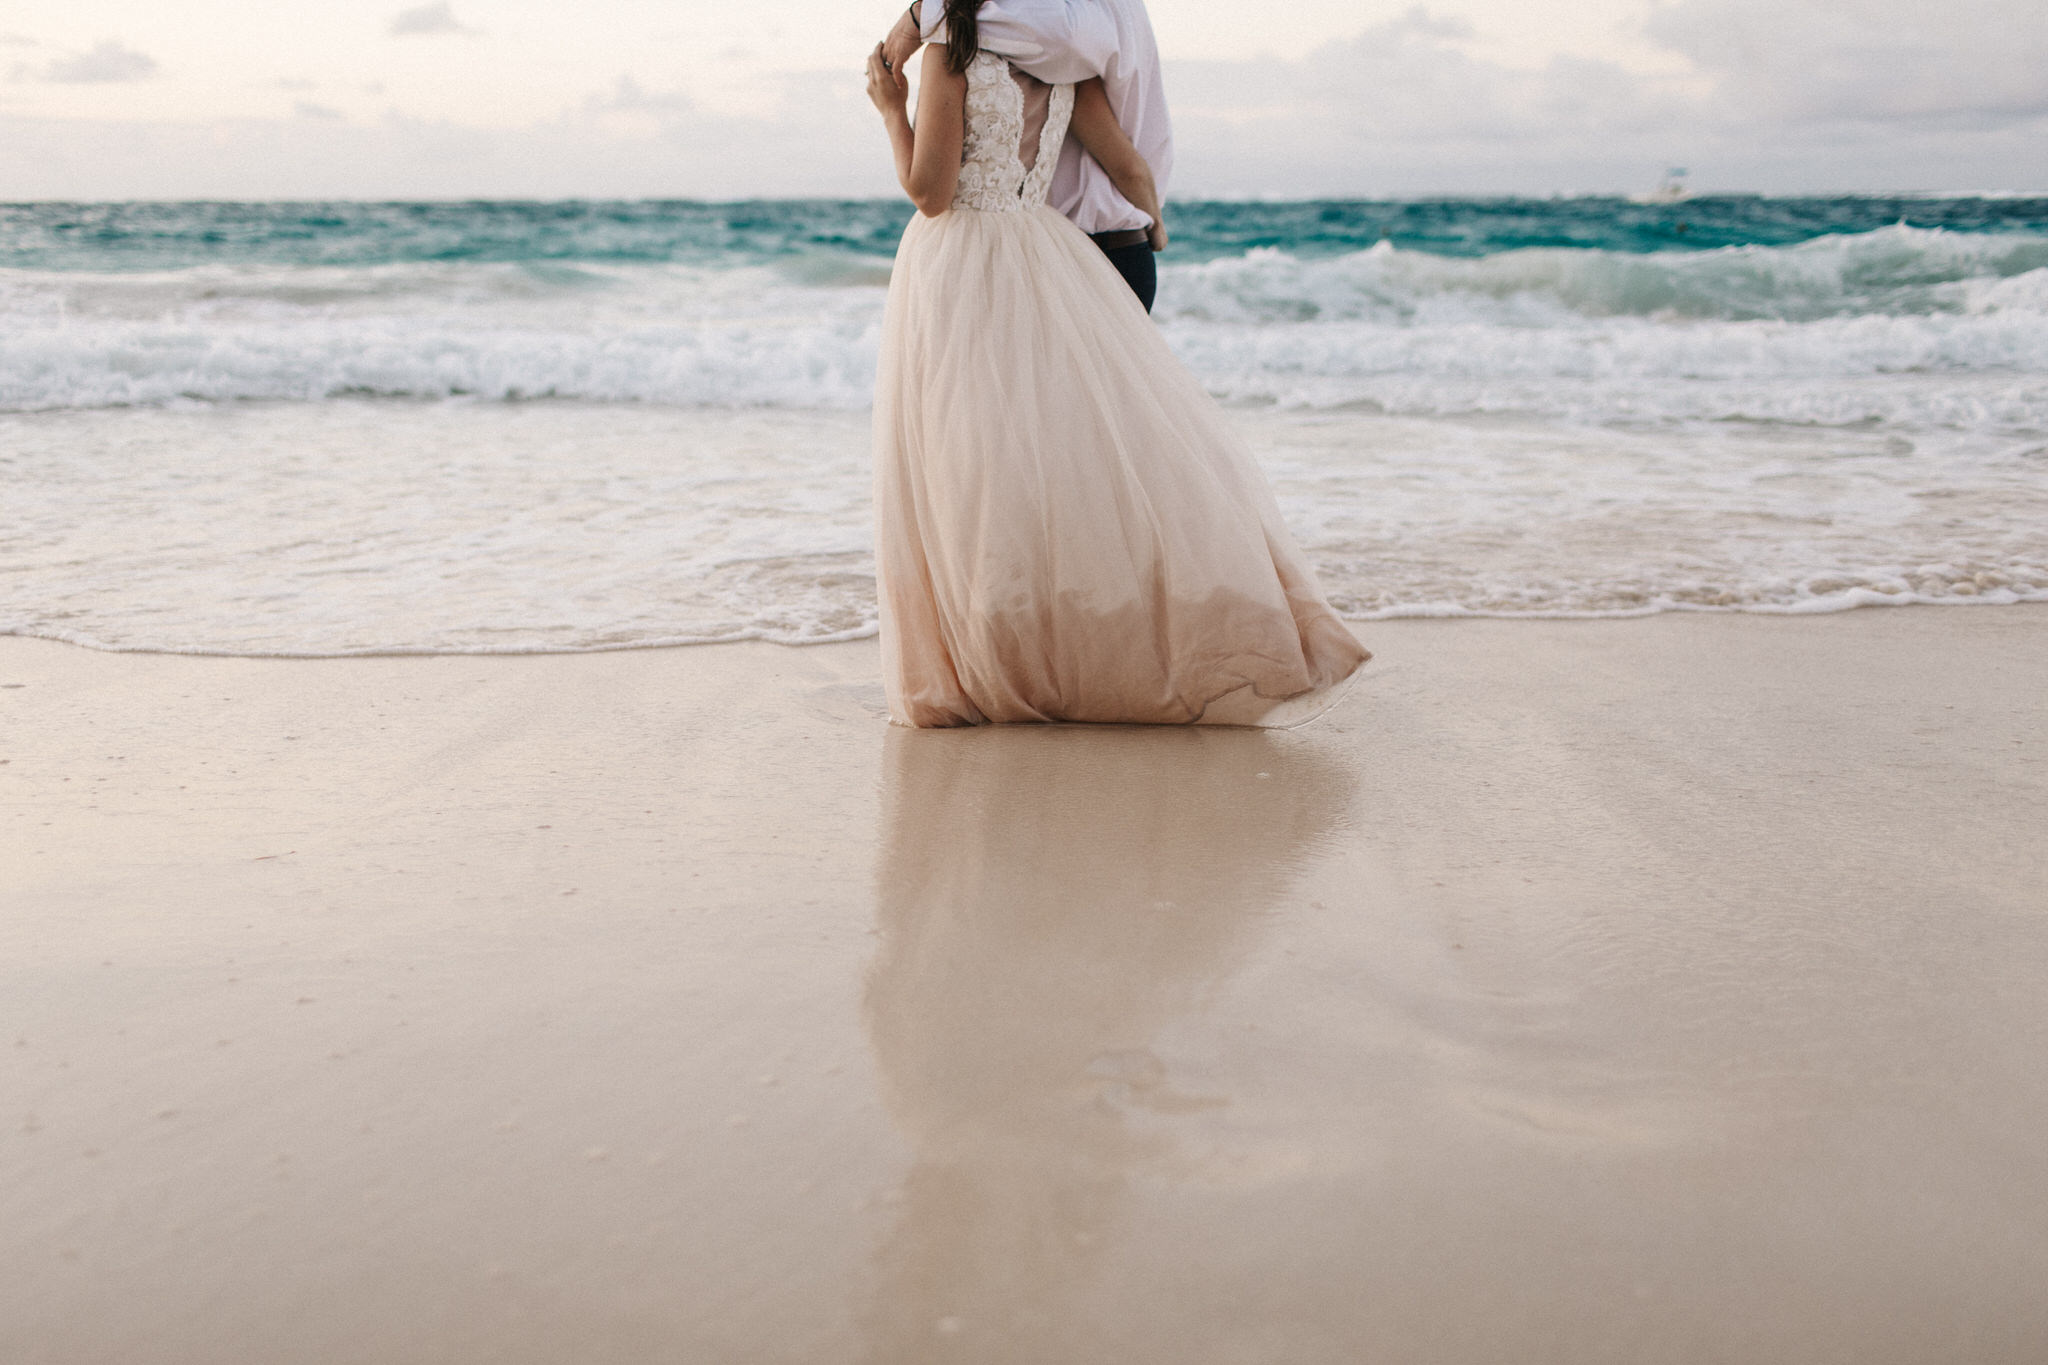 punta cana, destination wedding photographer, trash the dress